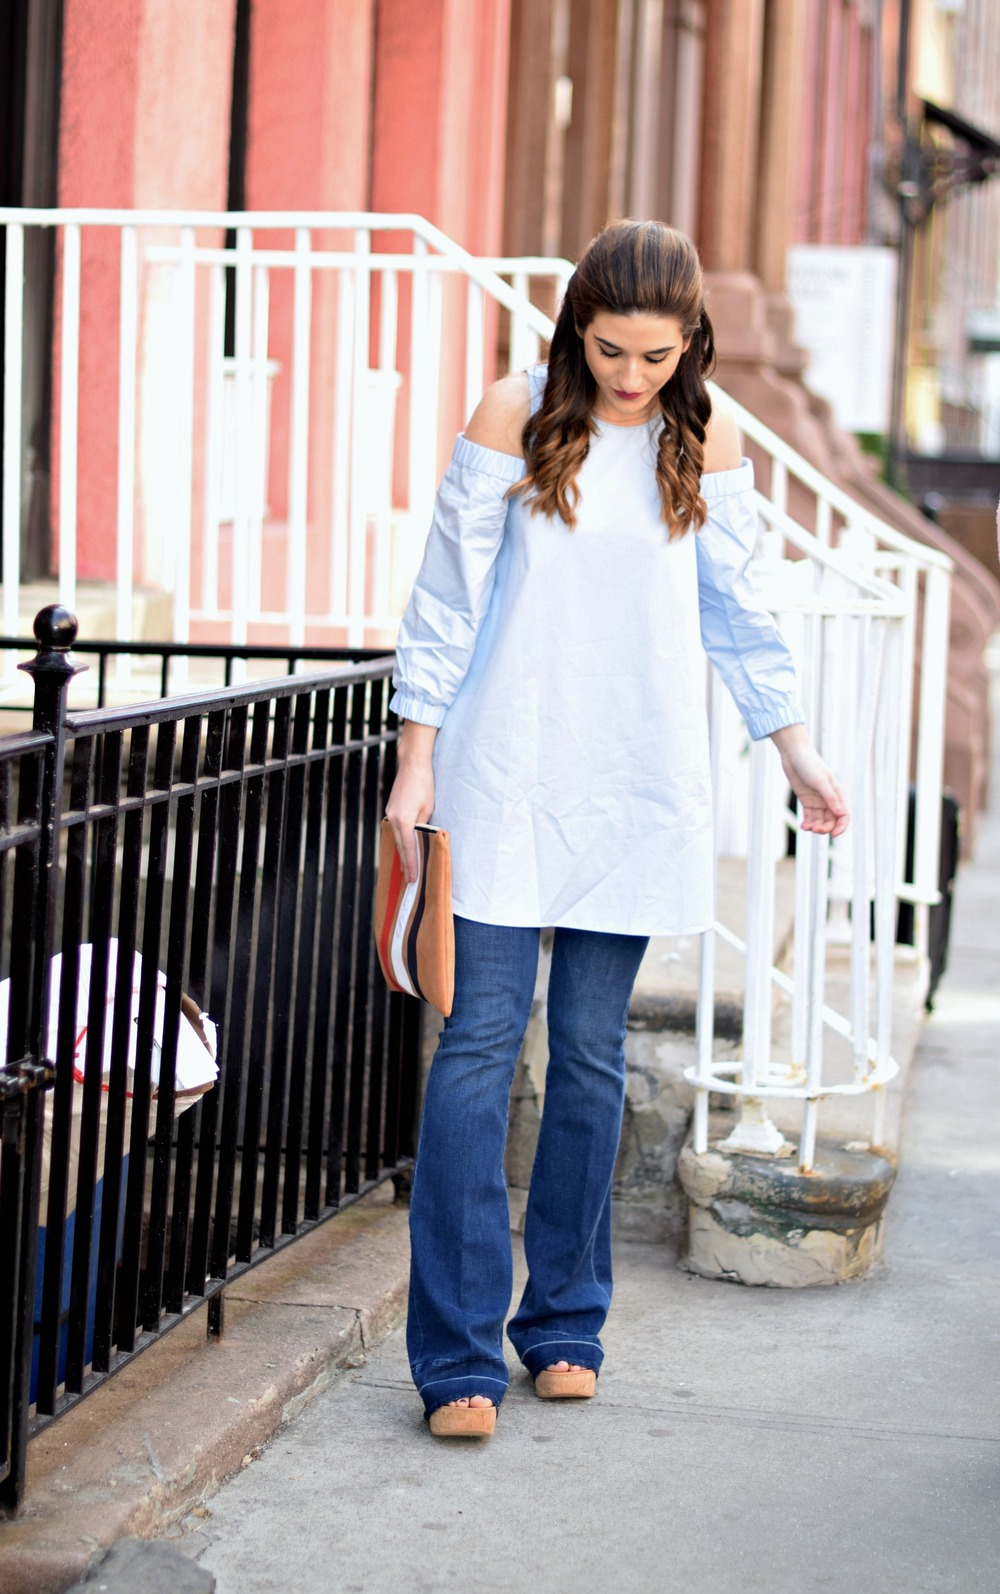 Cold Shoulder Tibi Top Frame Denim Louboutins & Love Fashion Blog Esther Santer NYC Fashion Blogger Jeans Designer Outfit OOTD Trunk Club Stylist Online Shopping Dolce Vita Platform Sandals Girl Women Inspiration Inspo Buy Shoes Pretty Clutch Preppy.jpg